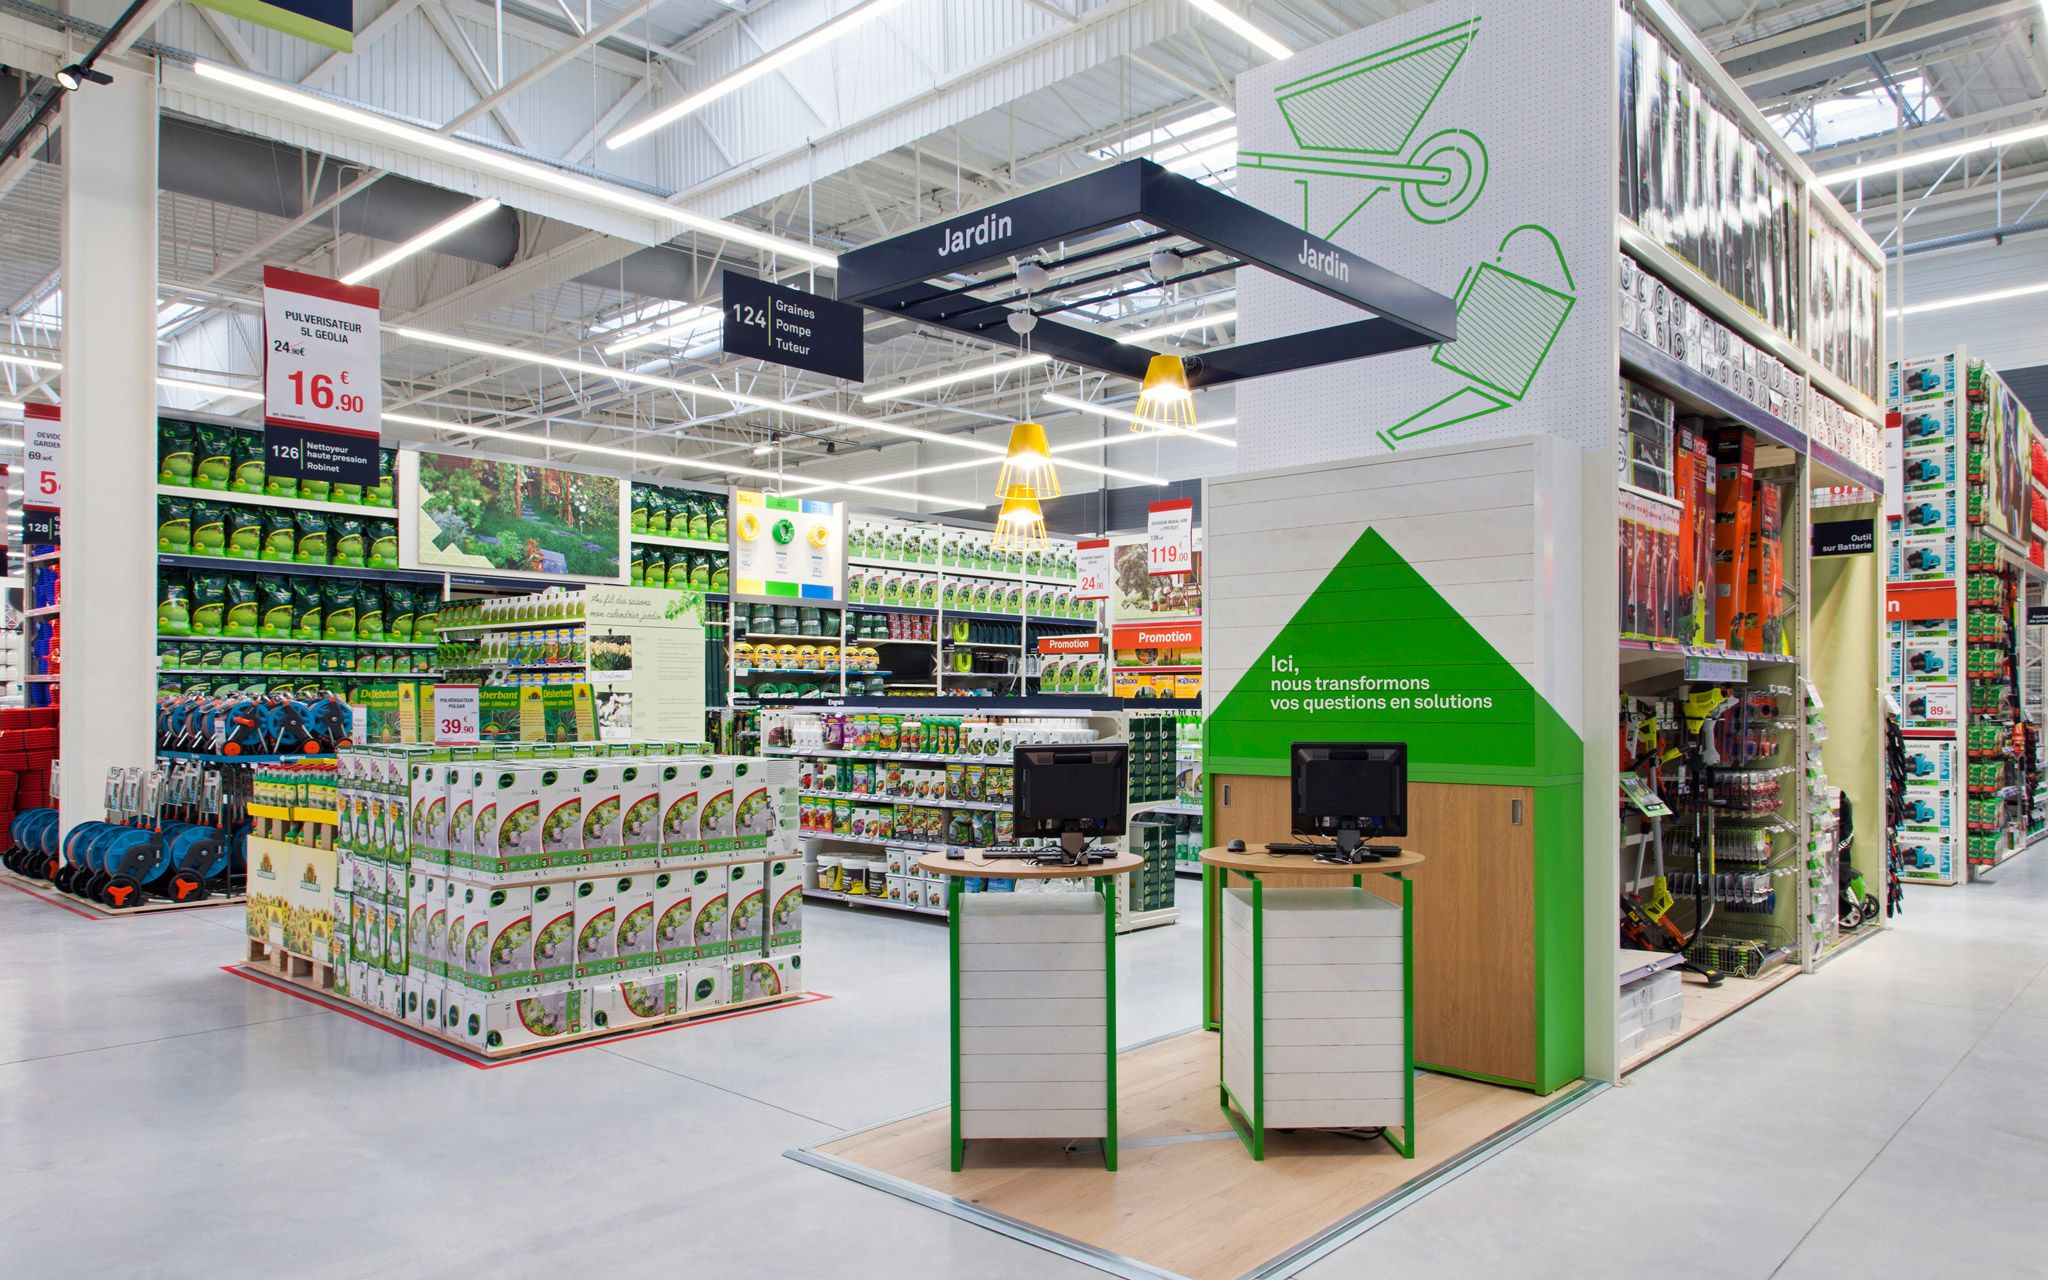 Leroy Merlin Le Havre Le Havre Retail Design Home Depot Store